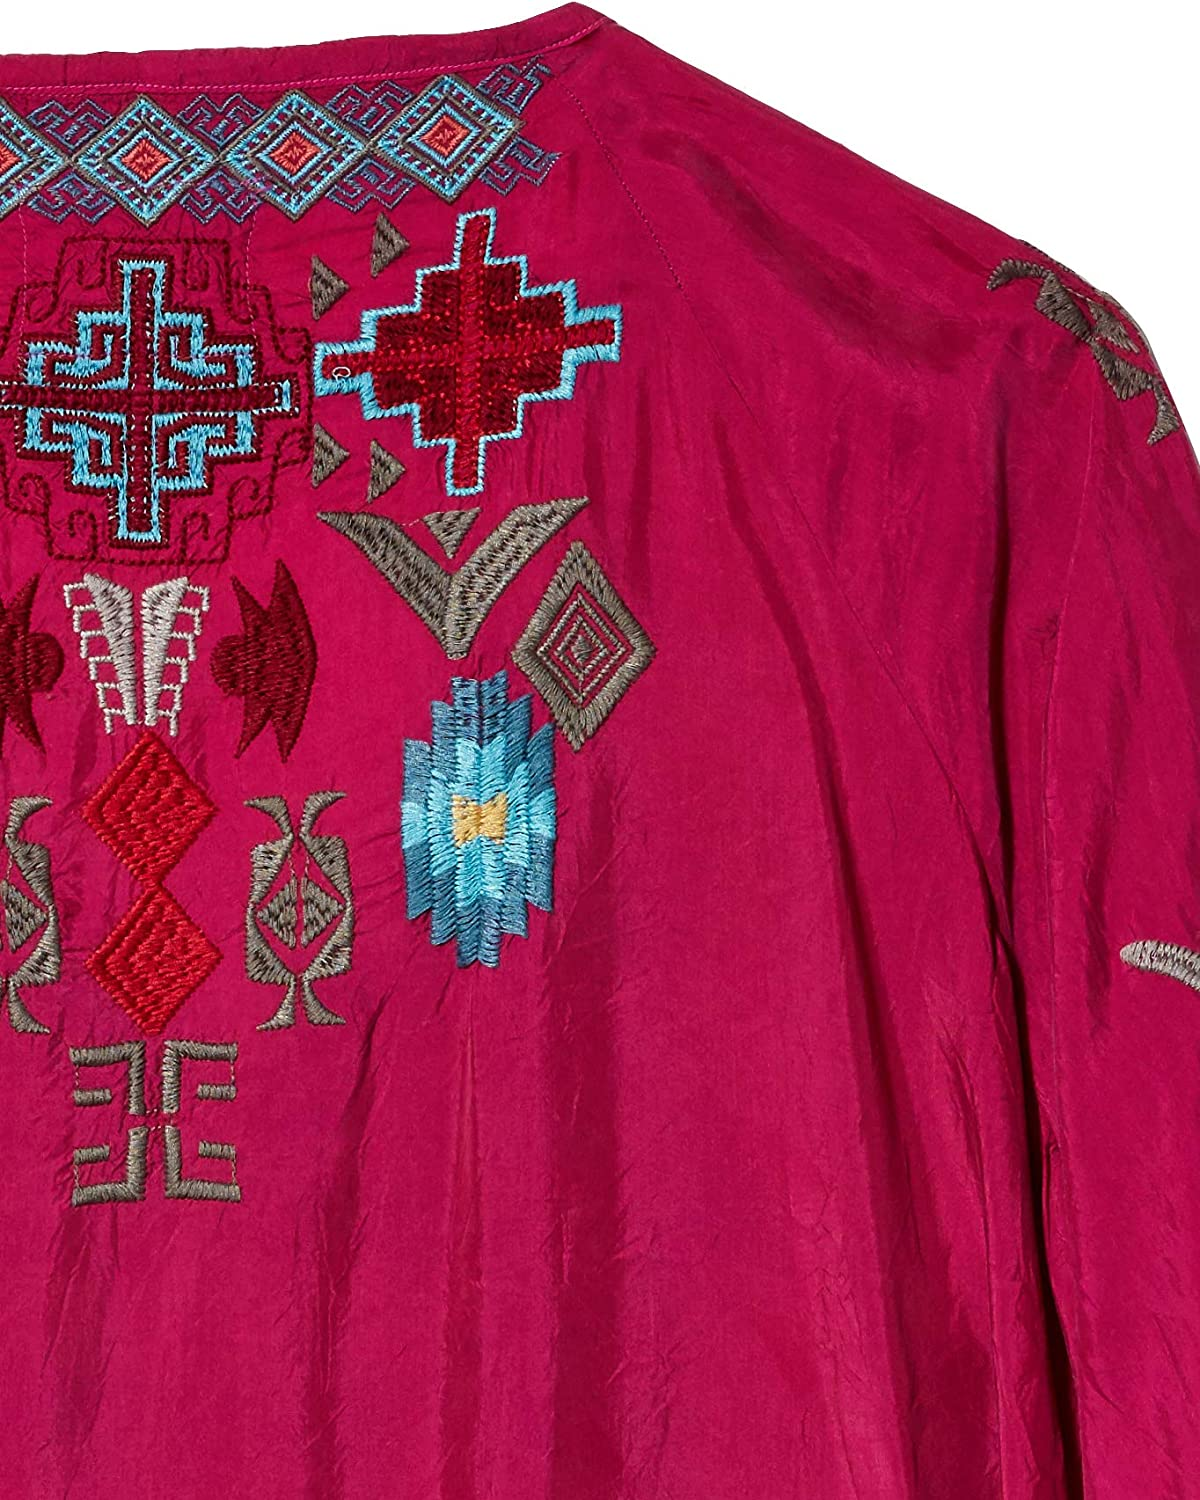 Biya Johnny Was Women's Long Sleeve Cupra Rayon Blouse with All Over Embroidery Dragon Fruit